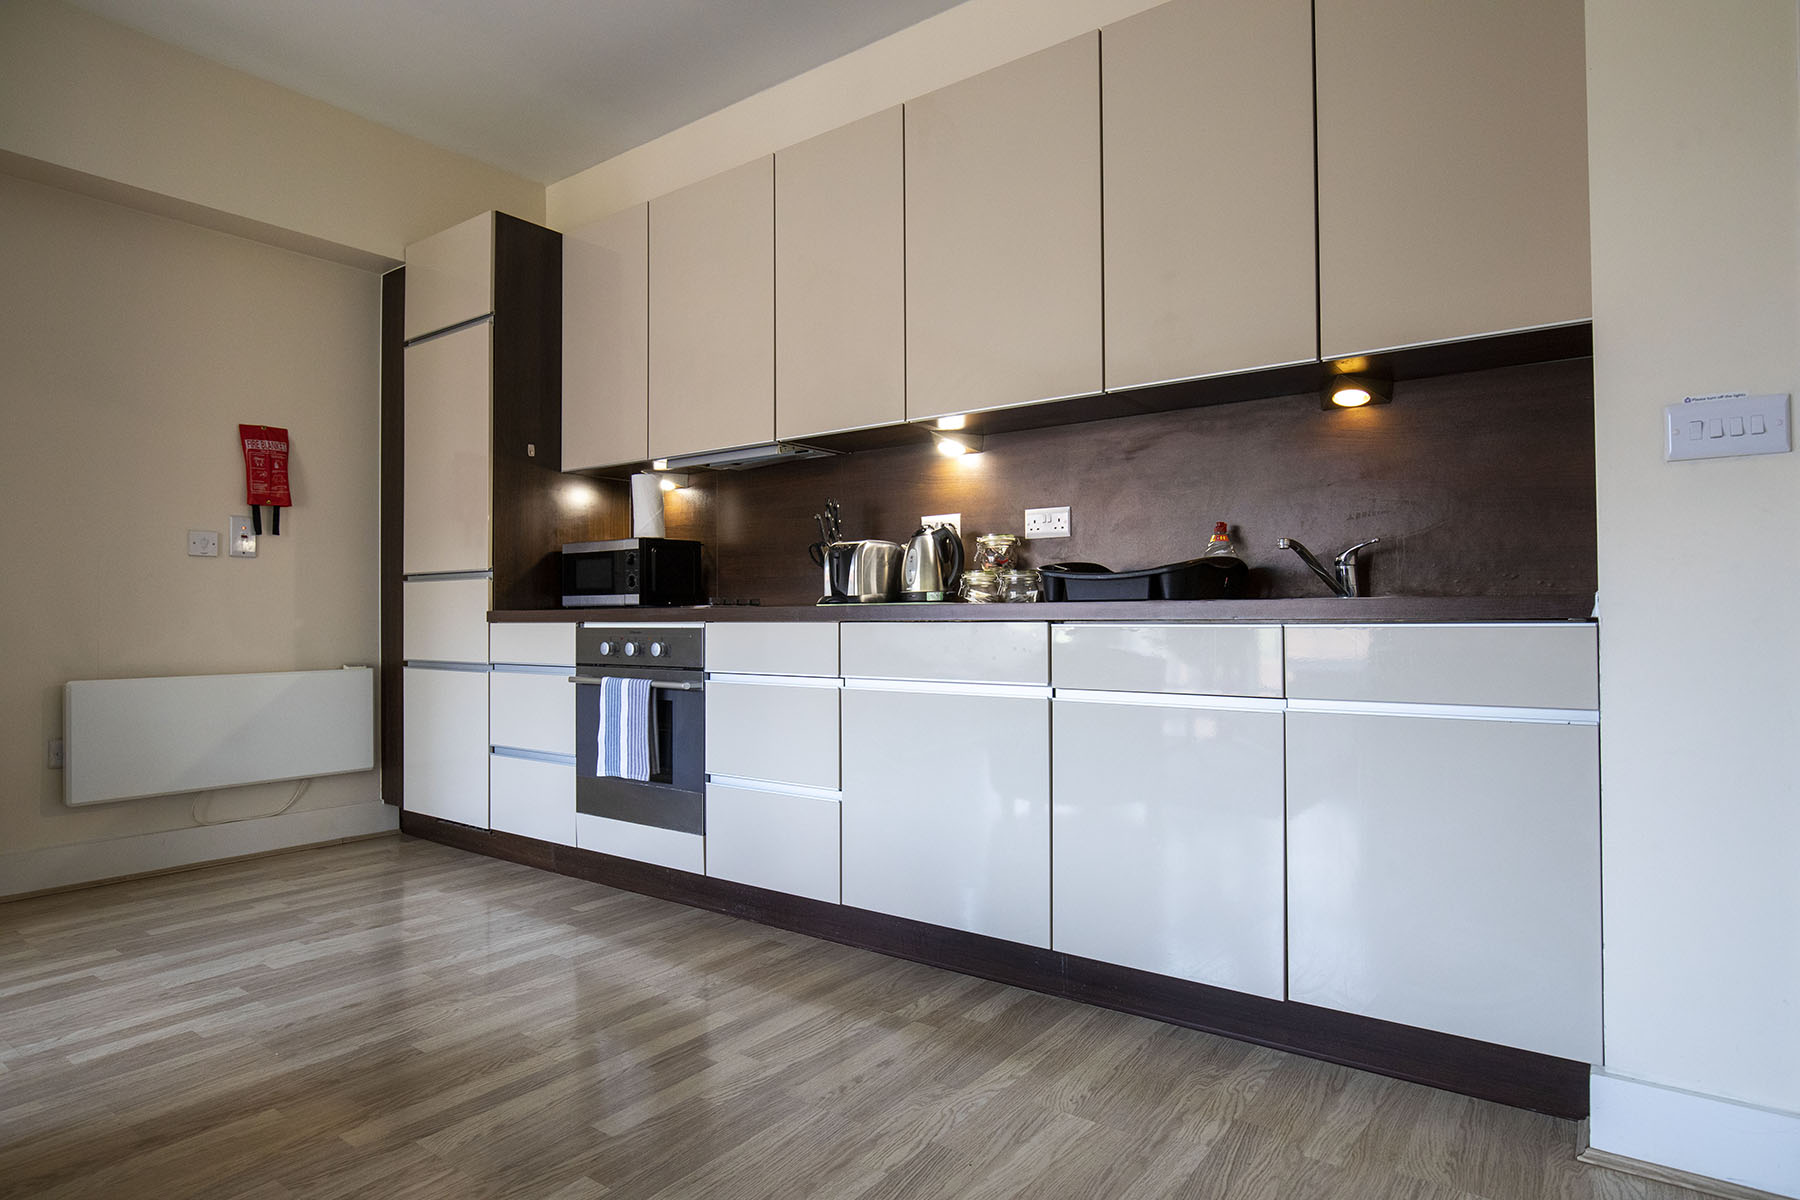 Kitchen at Flexi-Let Skyline Plaza Apartments, Centre, Basingstoke - Citybase Apartments